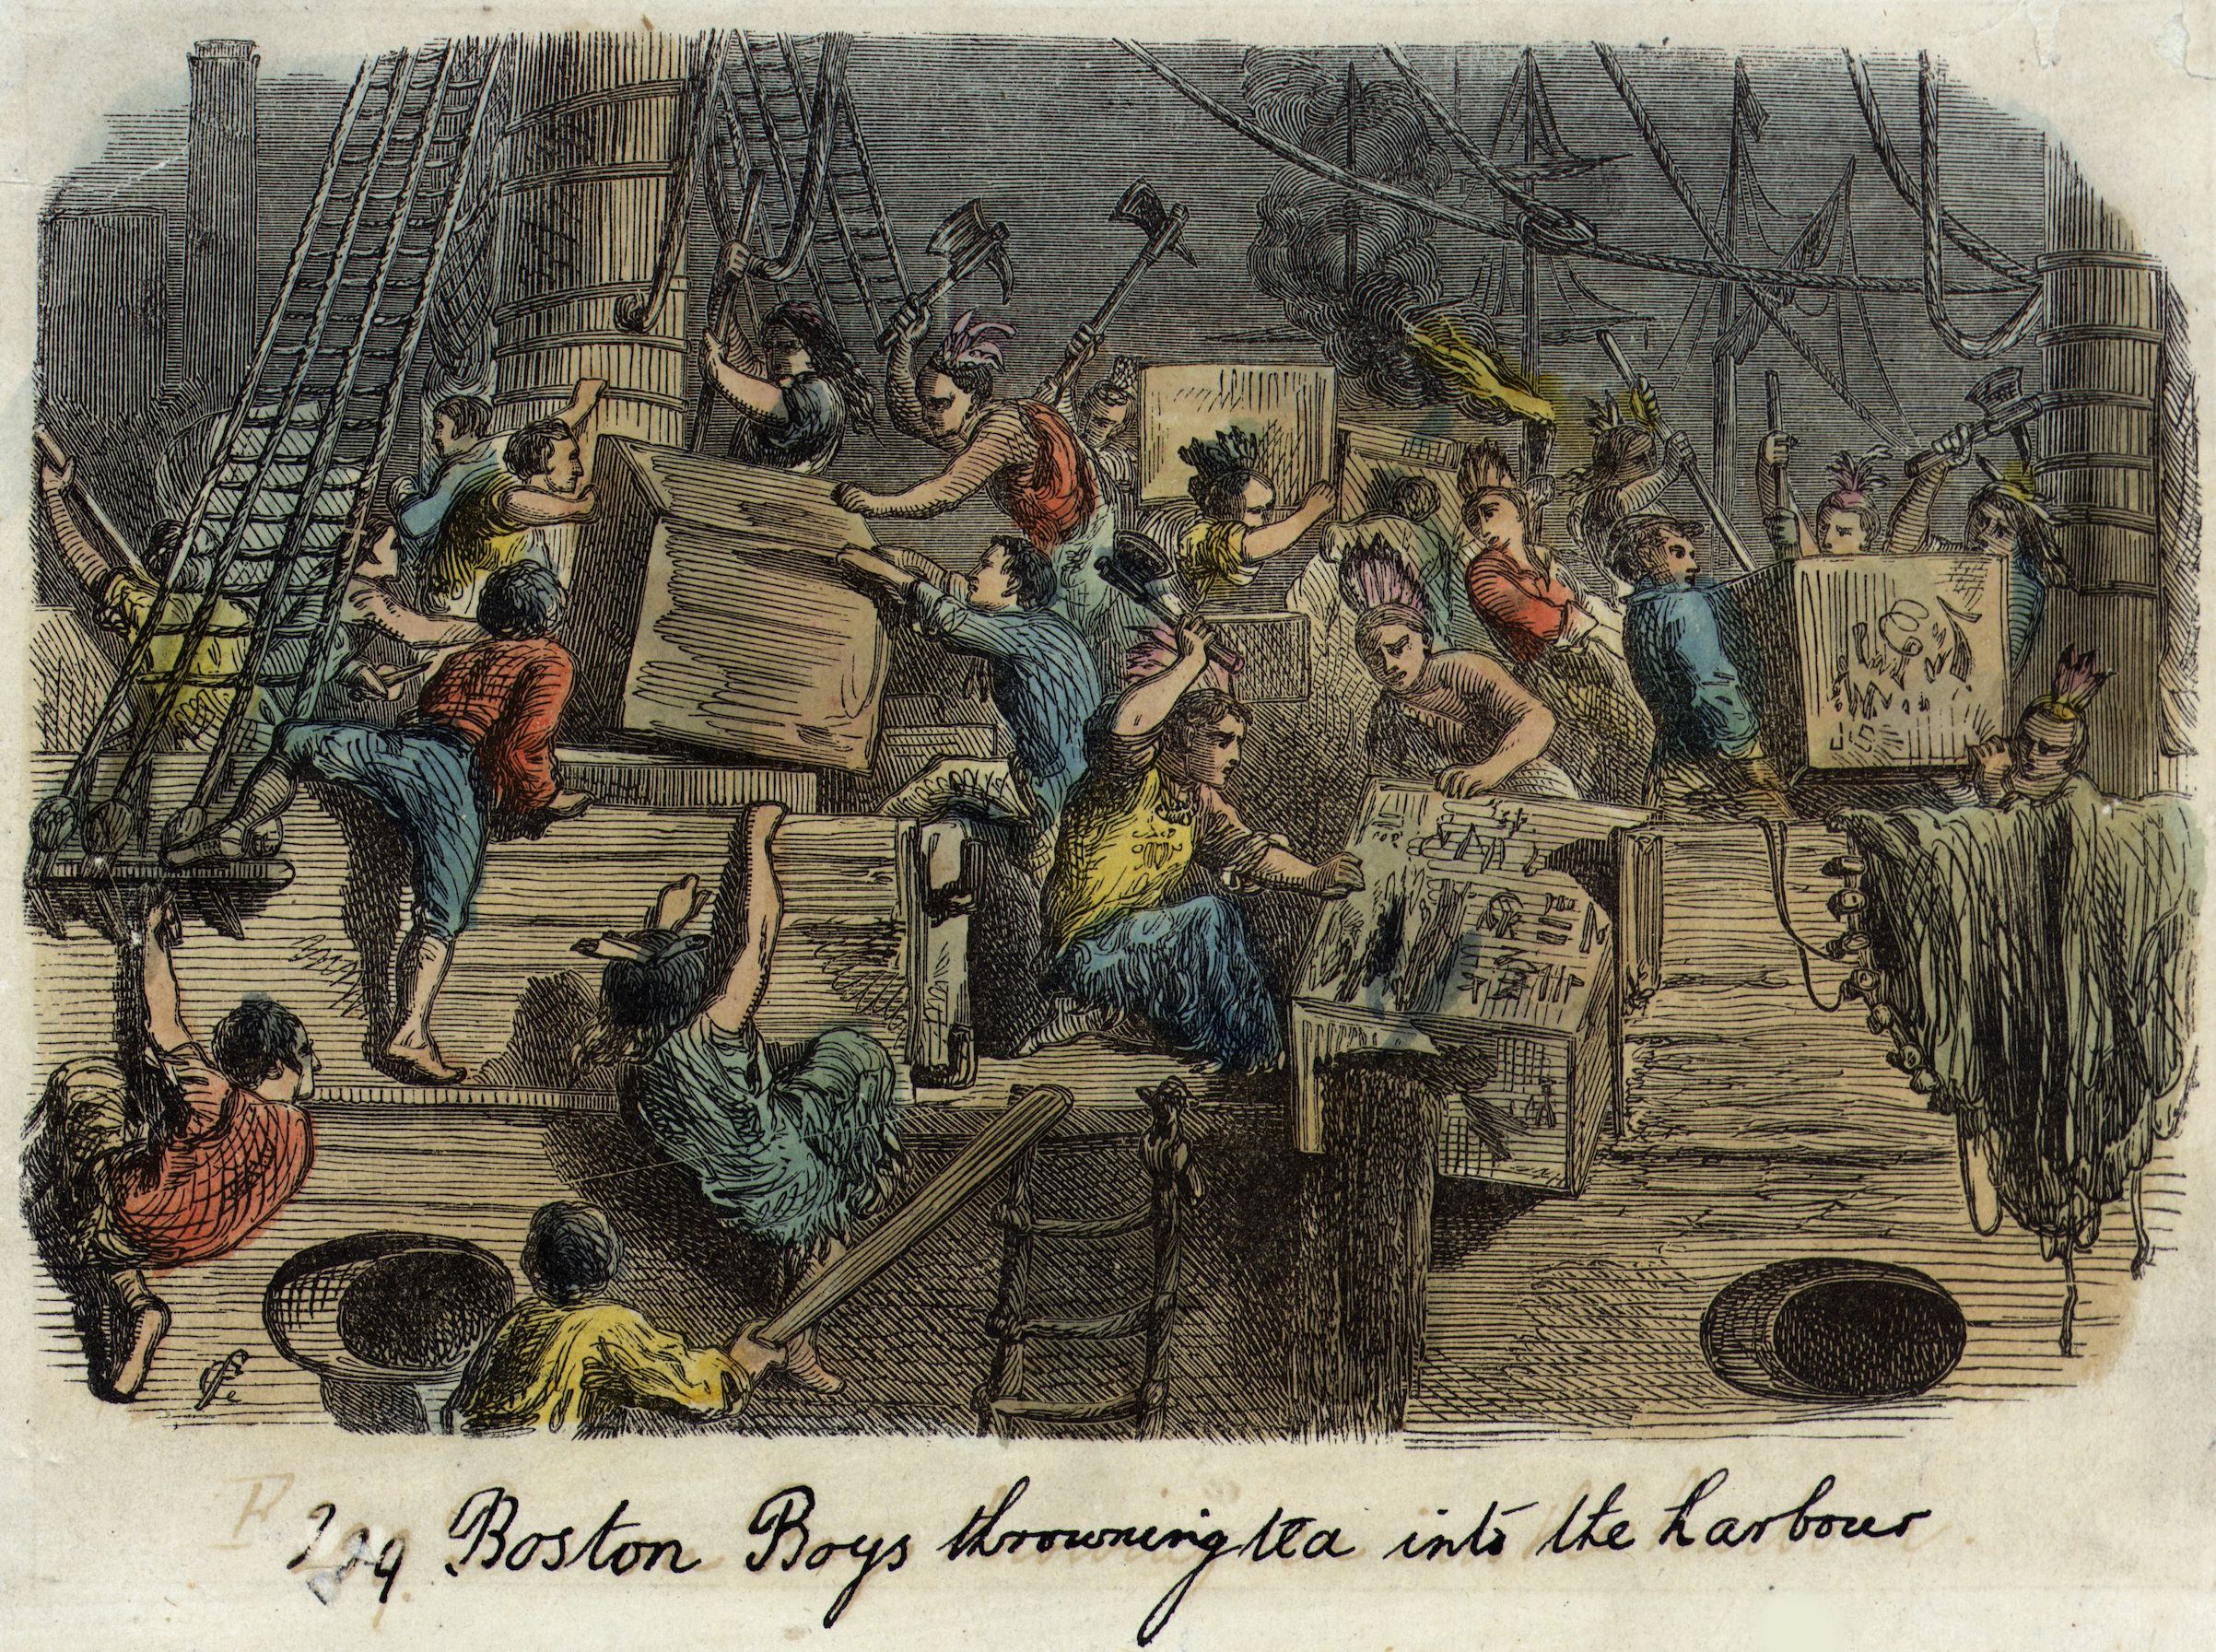 Illustration of the Boston Tea Party: A group of Bostonians, dressed as Native Americans, board a British ship laden with imported tea to throw the full crates into the harbor.